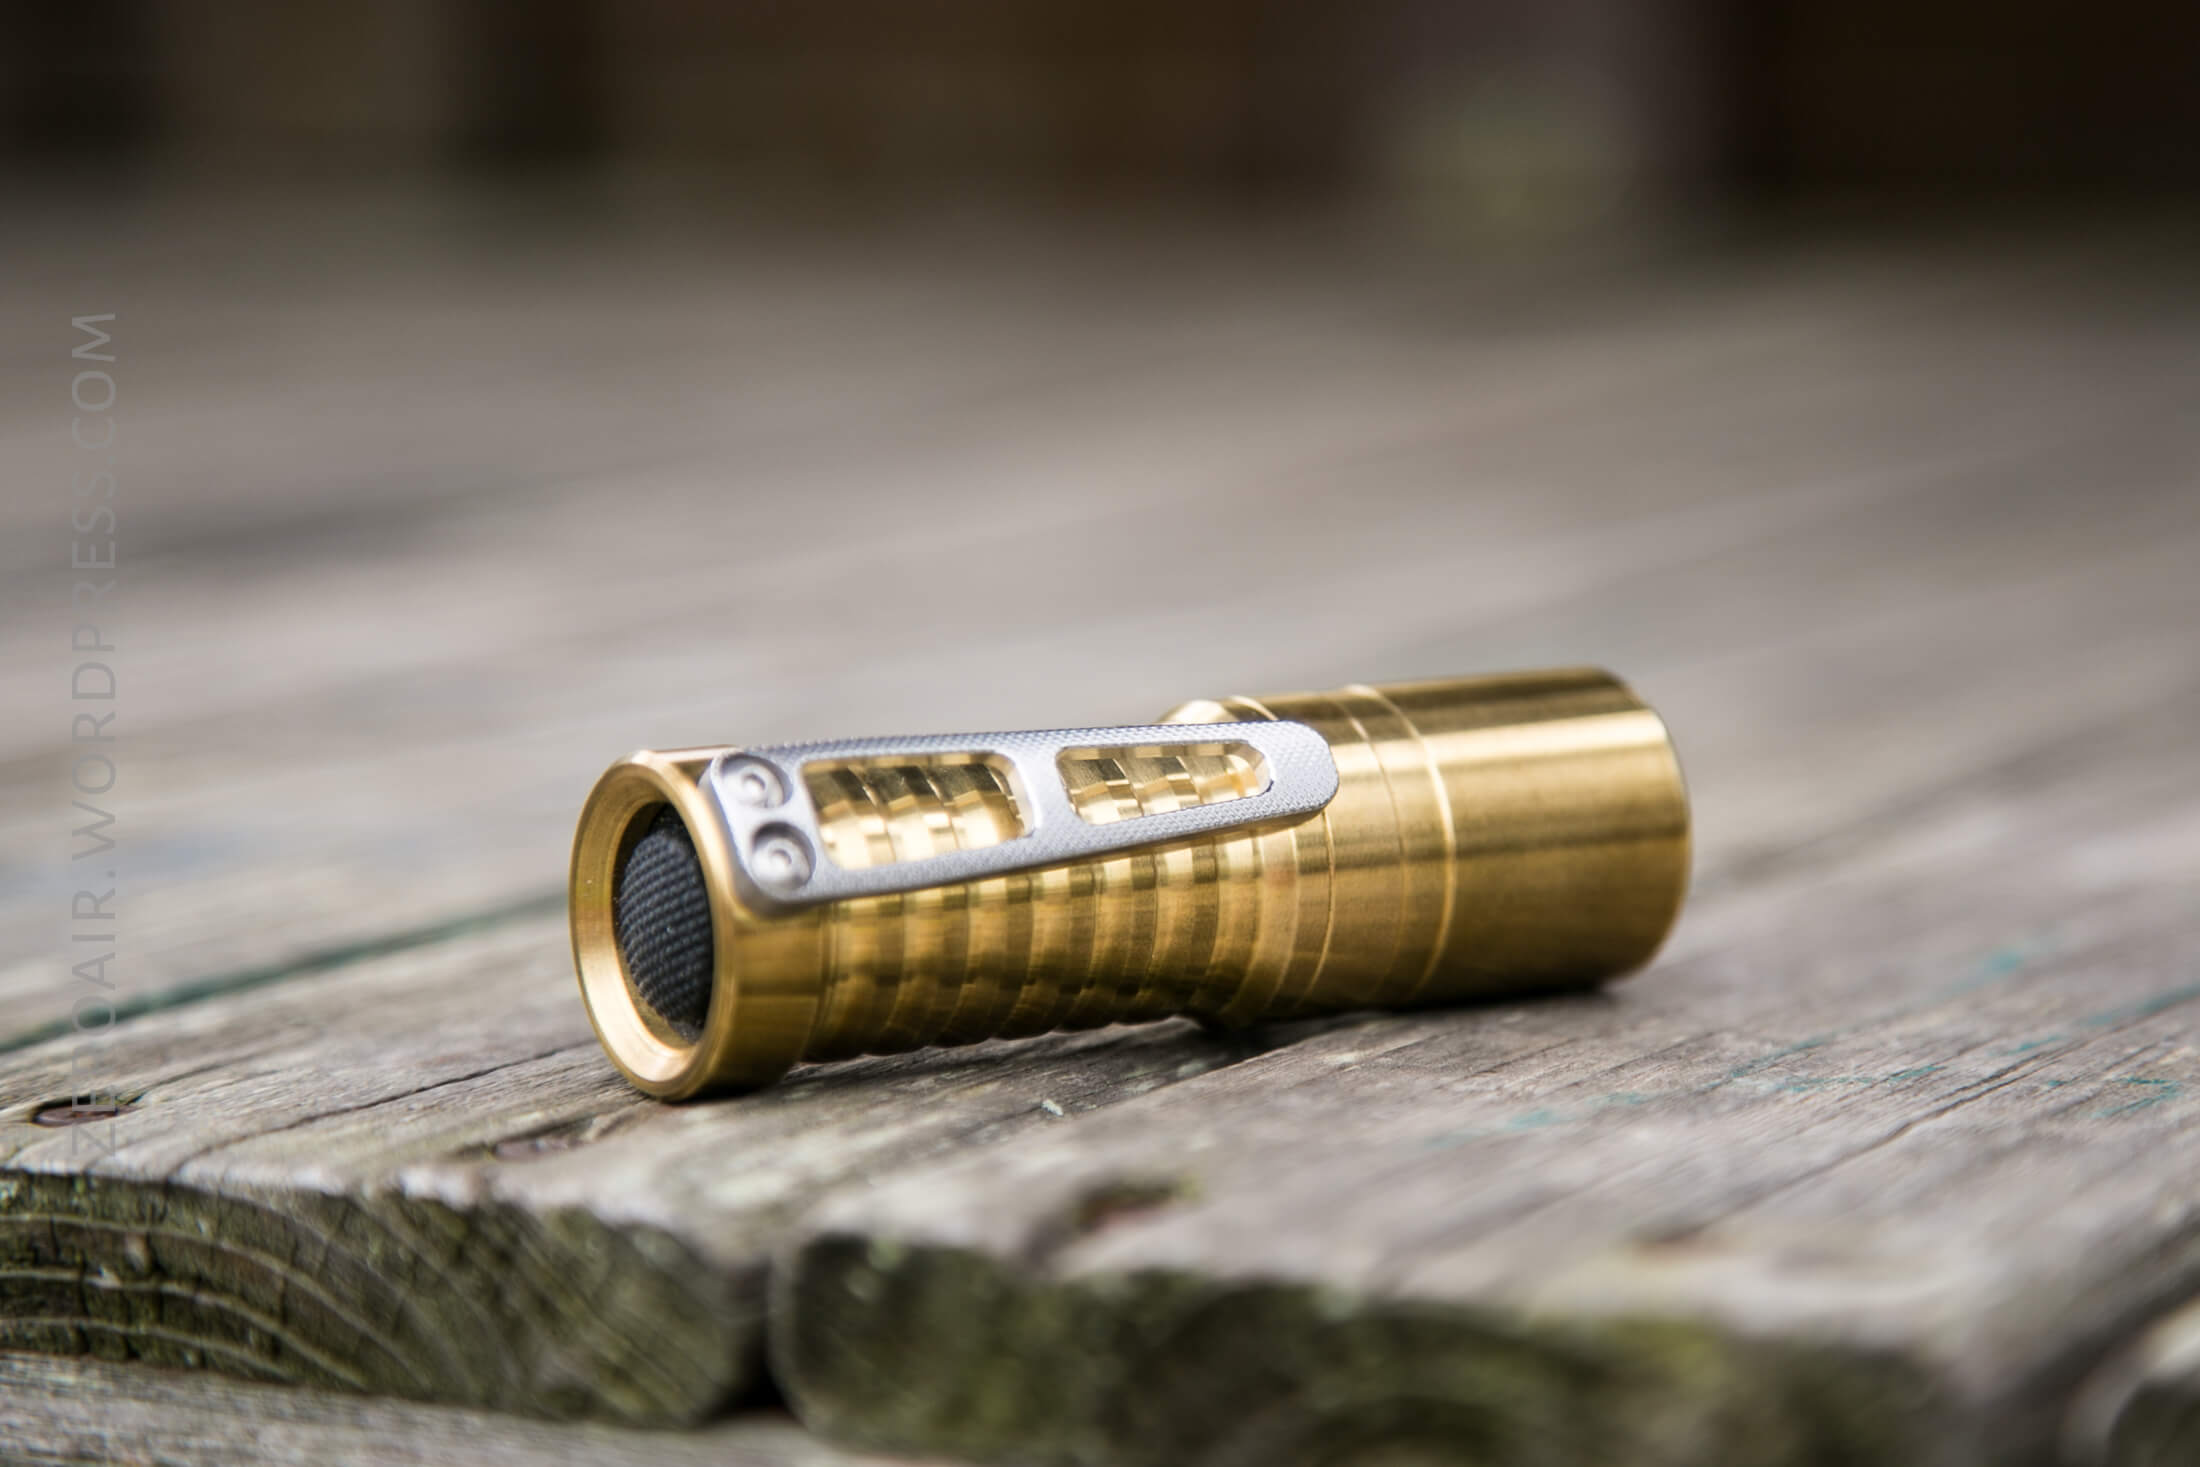 zeroair_reviews_venom_orion_brass_nichia_18.jpg